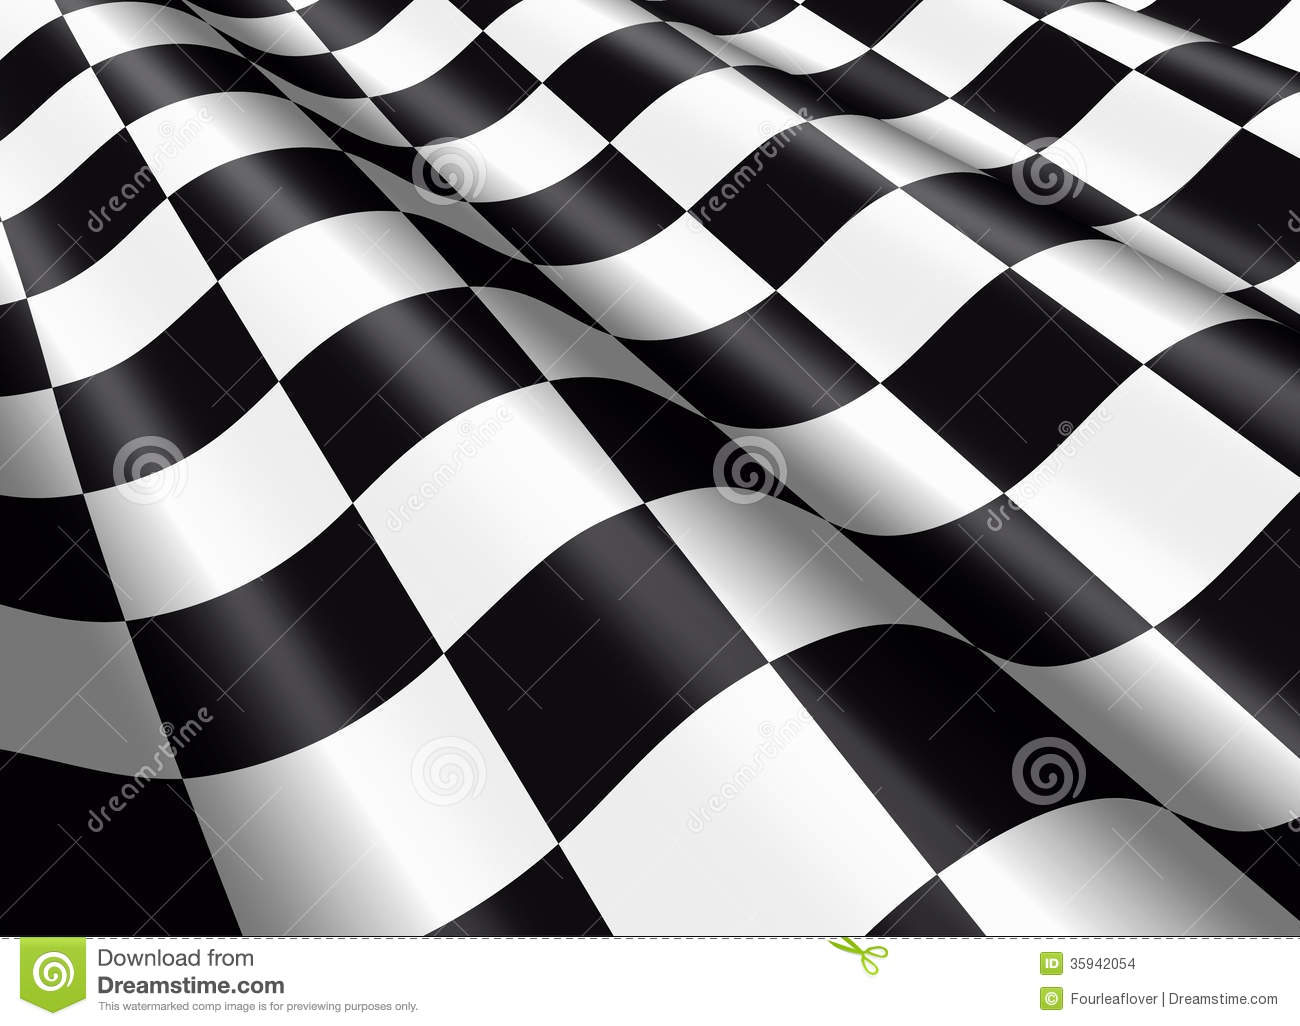 Audio Car Wallpaper Download Waving Chequered Flag Stock Images Image 35942054